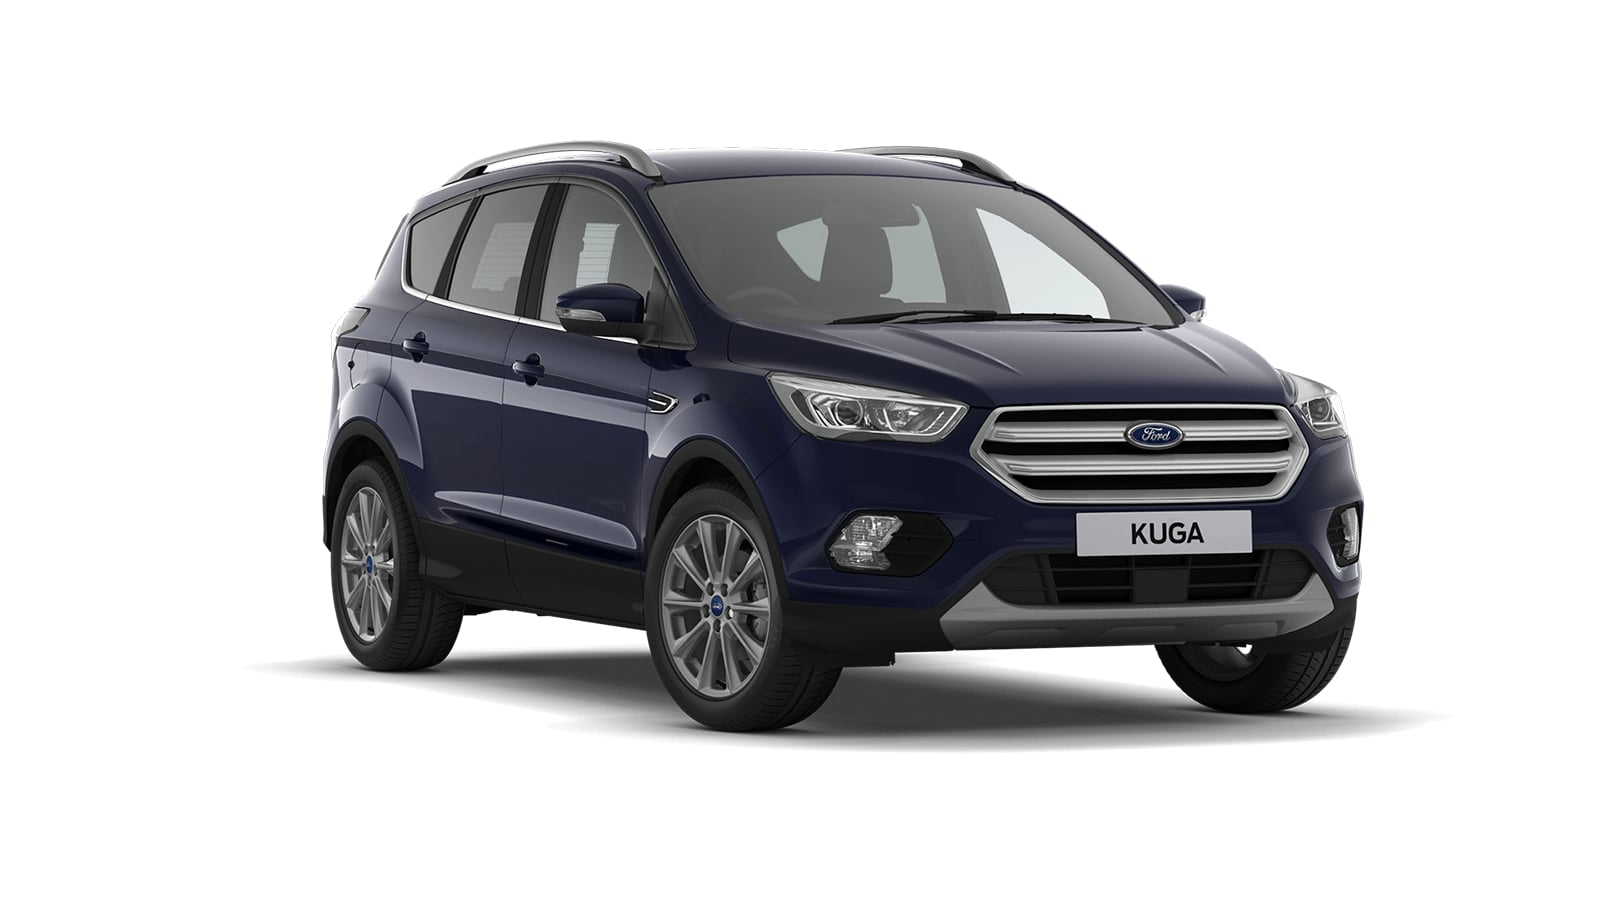 Ford Kuga Titanium Edition 2.0L TDCi 180PS at RGR Garages